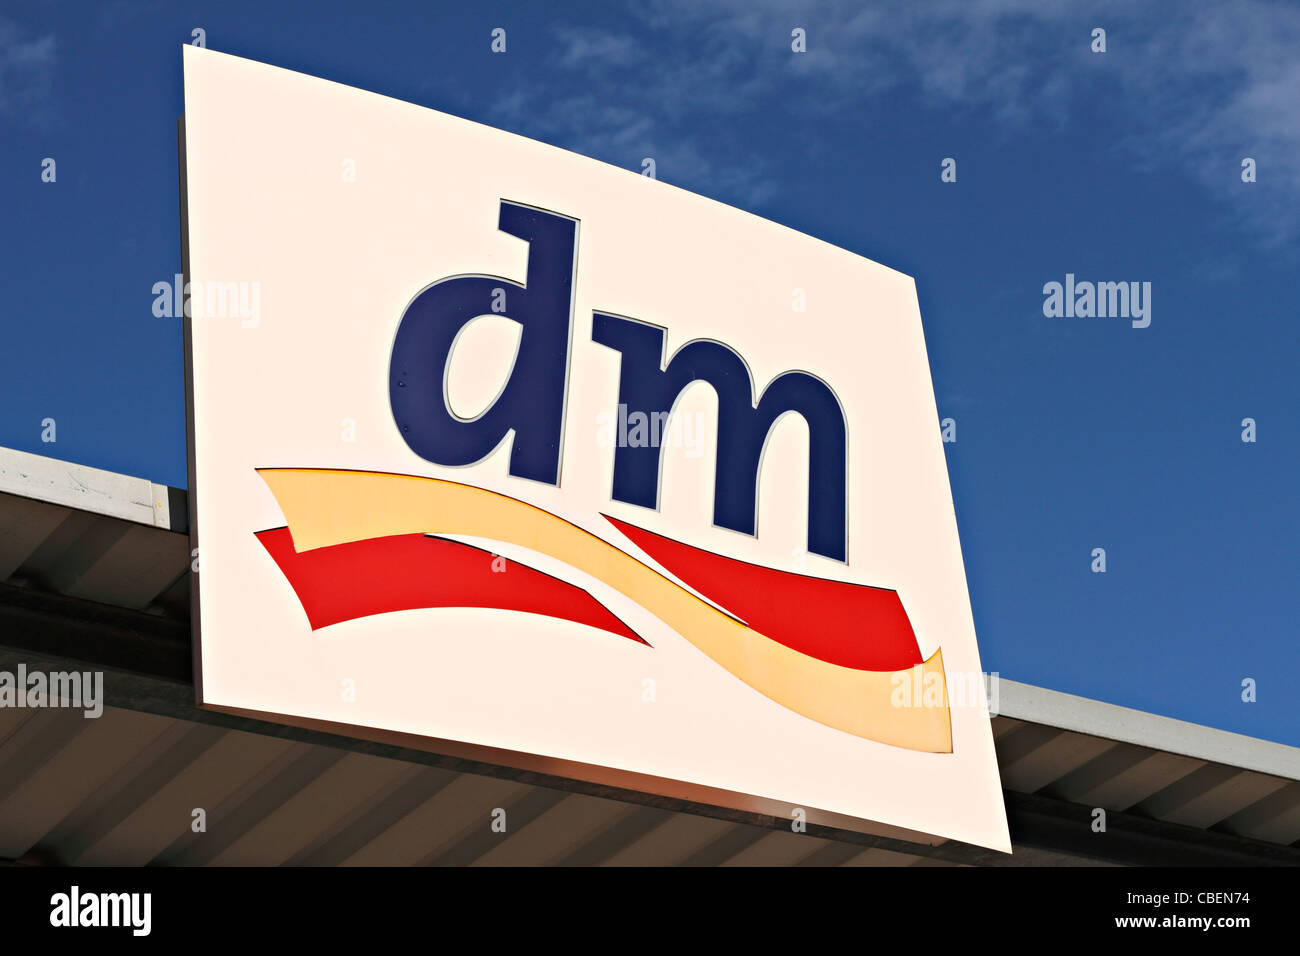 DM supermarket sign, Chiemgau Upper Bavaria Germany - Stock Image